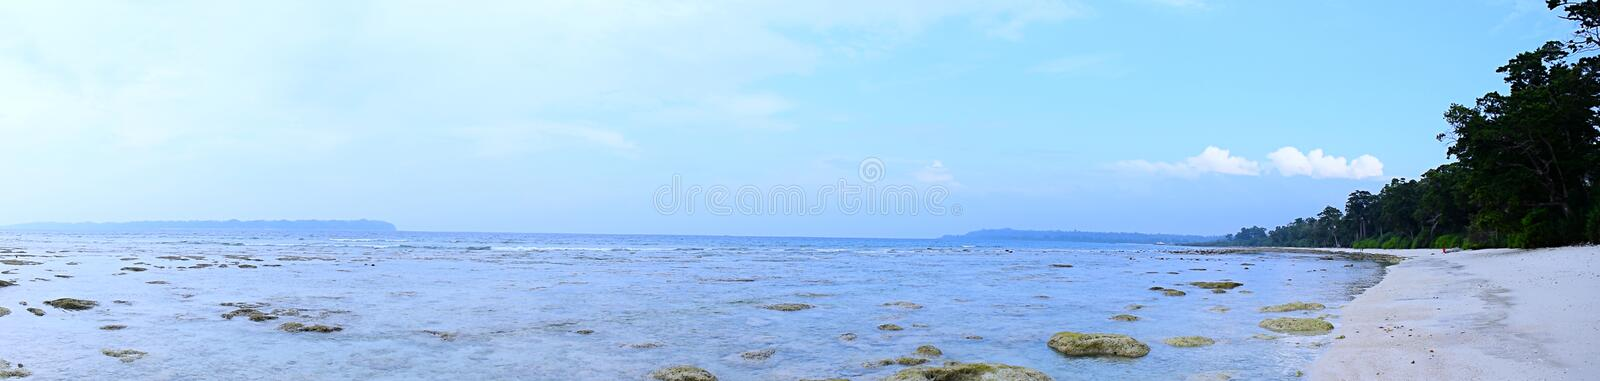 Panoramic View of Azure Sea Water, Rocky and Sandy Pristine Beach, Coastal Vegetation, and Clear Blue Sky - Seascape royalty free stock photo